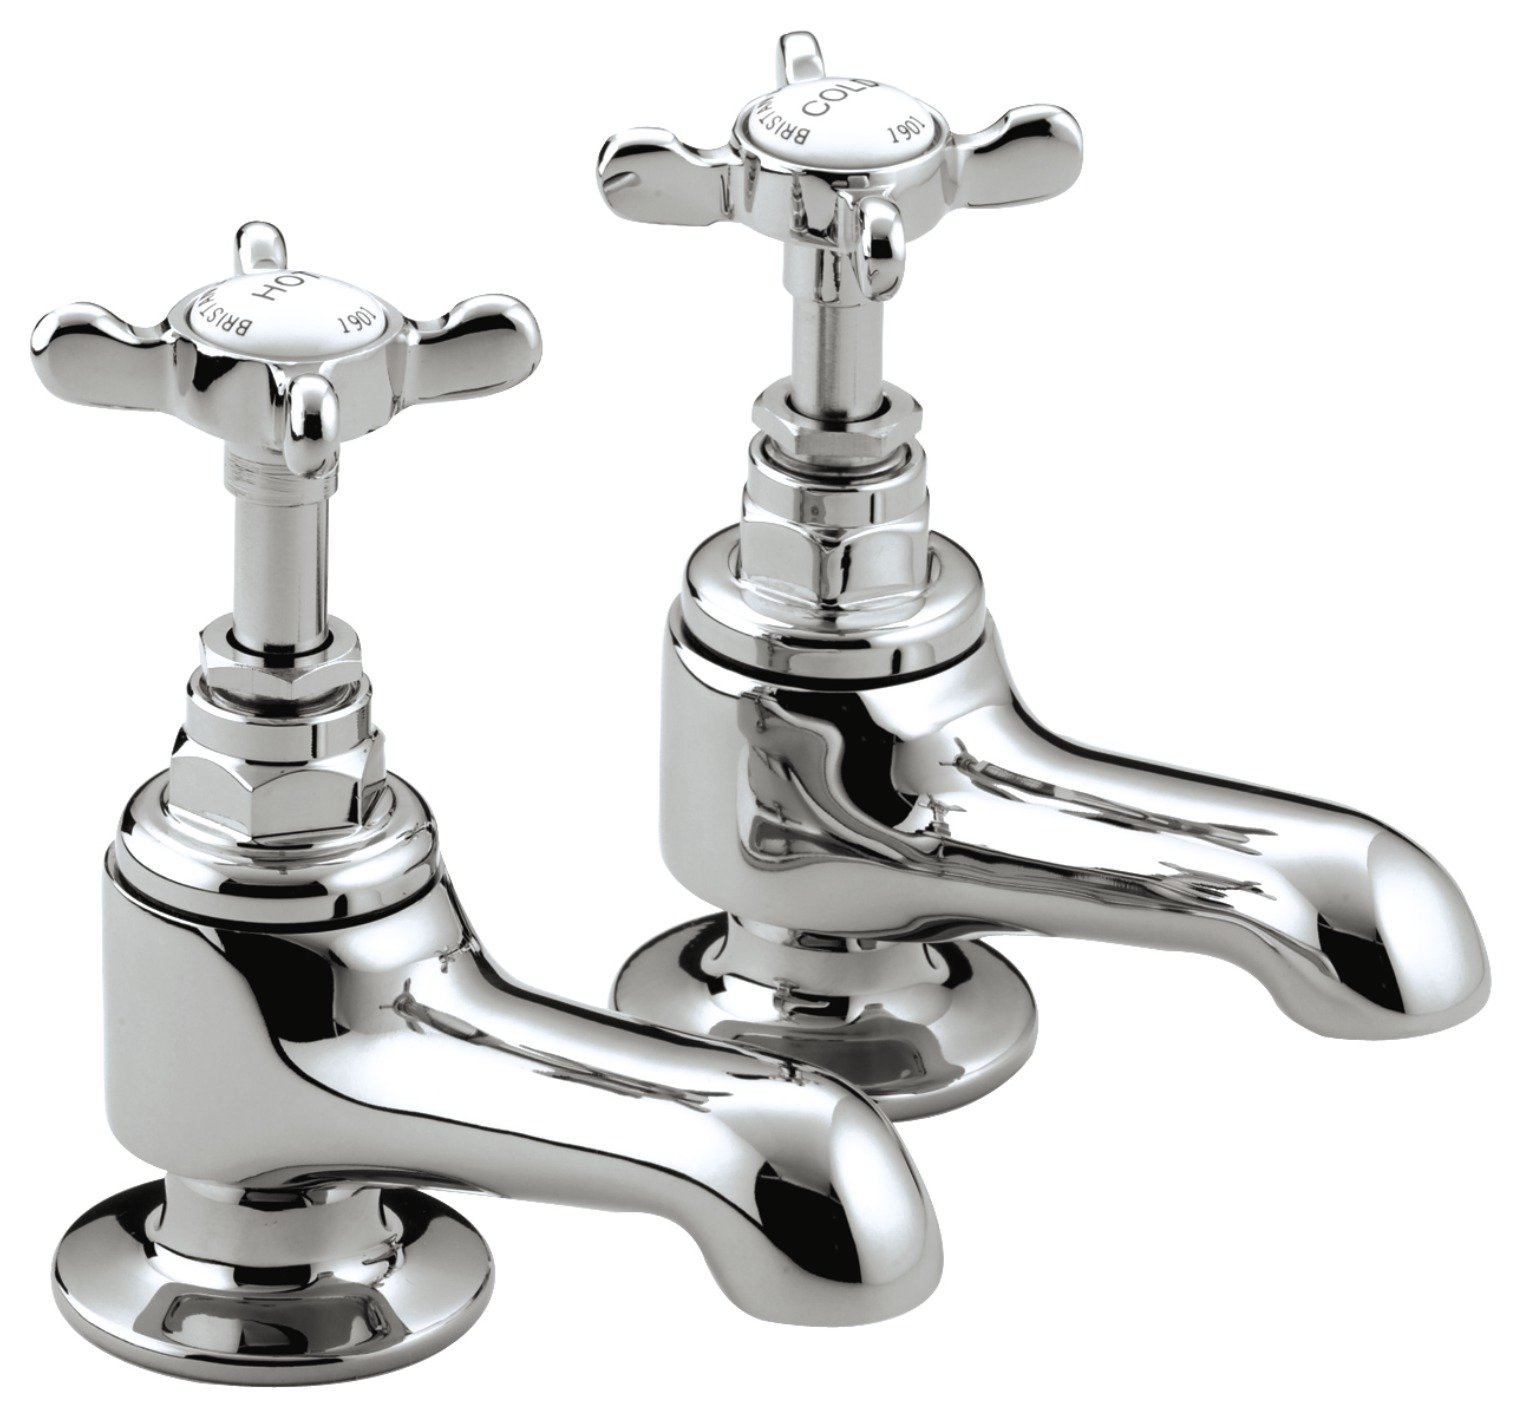 Image of Bristan 1901 Bath Taps - Chrome.